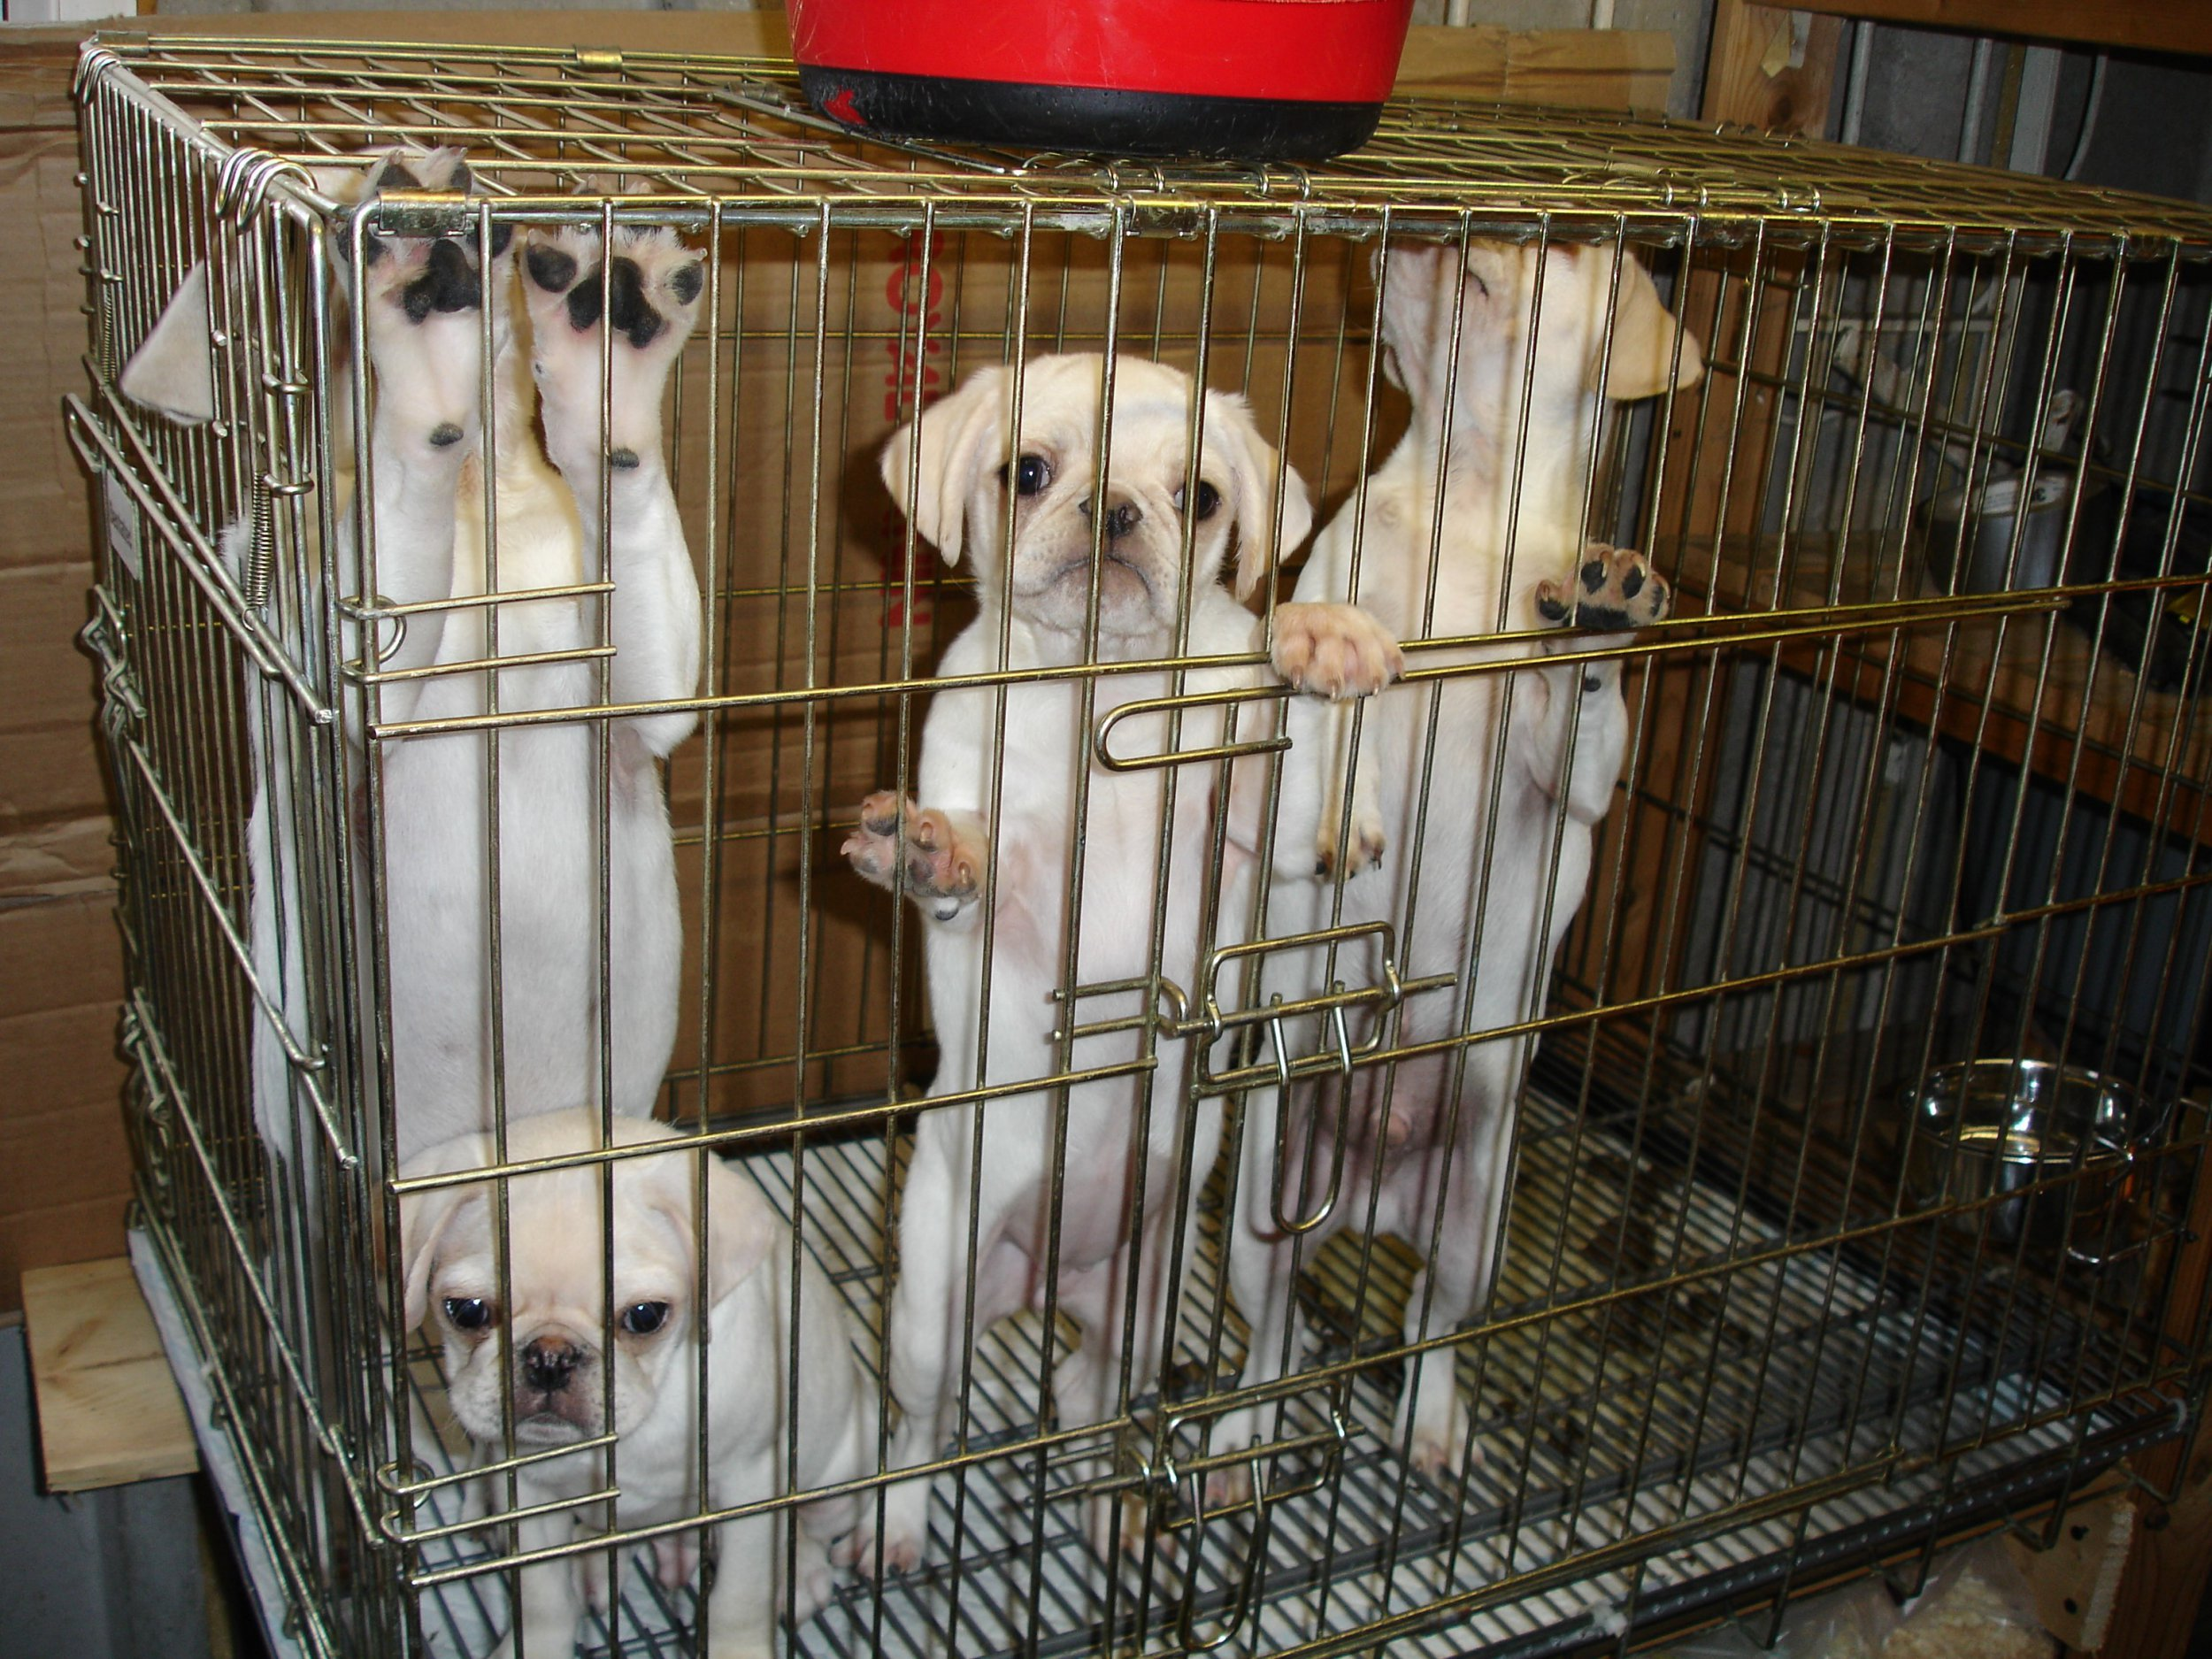 Pictured are some of the cats and dogs rescued from the couple's home by the RSPCA. Two EU migrants Laura Kiseliova, aged 39, and Raimondas Titas, aged 37who illegally sold ???designer puppies??? for up to ??1,000 each to unwitting British customers have been ordered to be locked away in the UK - despite them using freedom of movement laws to flee Britain. Disclaimer: While Cavendish Press (Manchester) Ltd uses its' best endeavours to establish the copyright and authenticity of all pictures supplied, it accepts no liability for any damage, loss or legal action caused by the use of images supplied. The publication of images is solely at your discretion. For terms and conditions see http://www.cavendish-press.co.uk/pages/terms-and-conditions.aspx